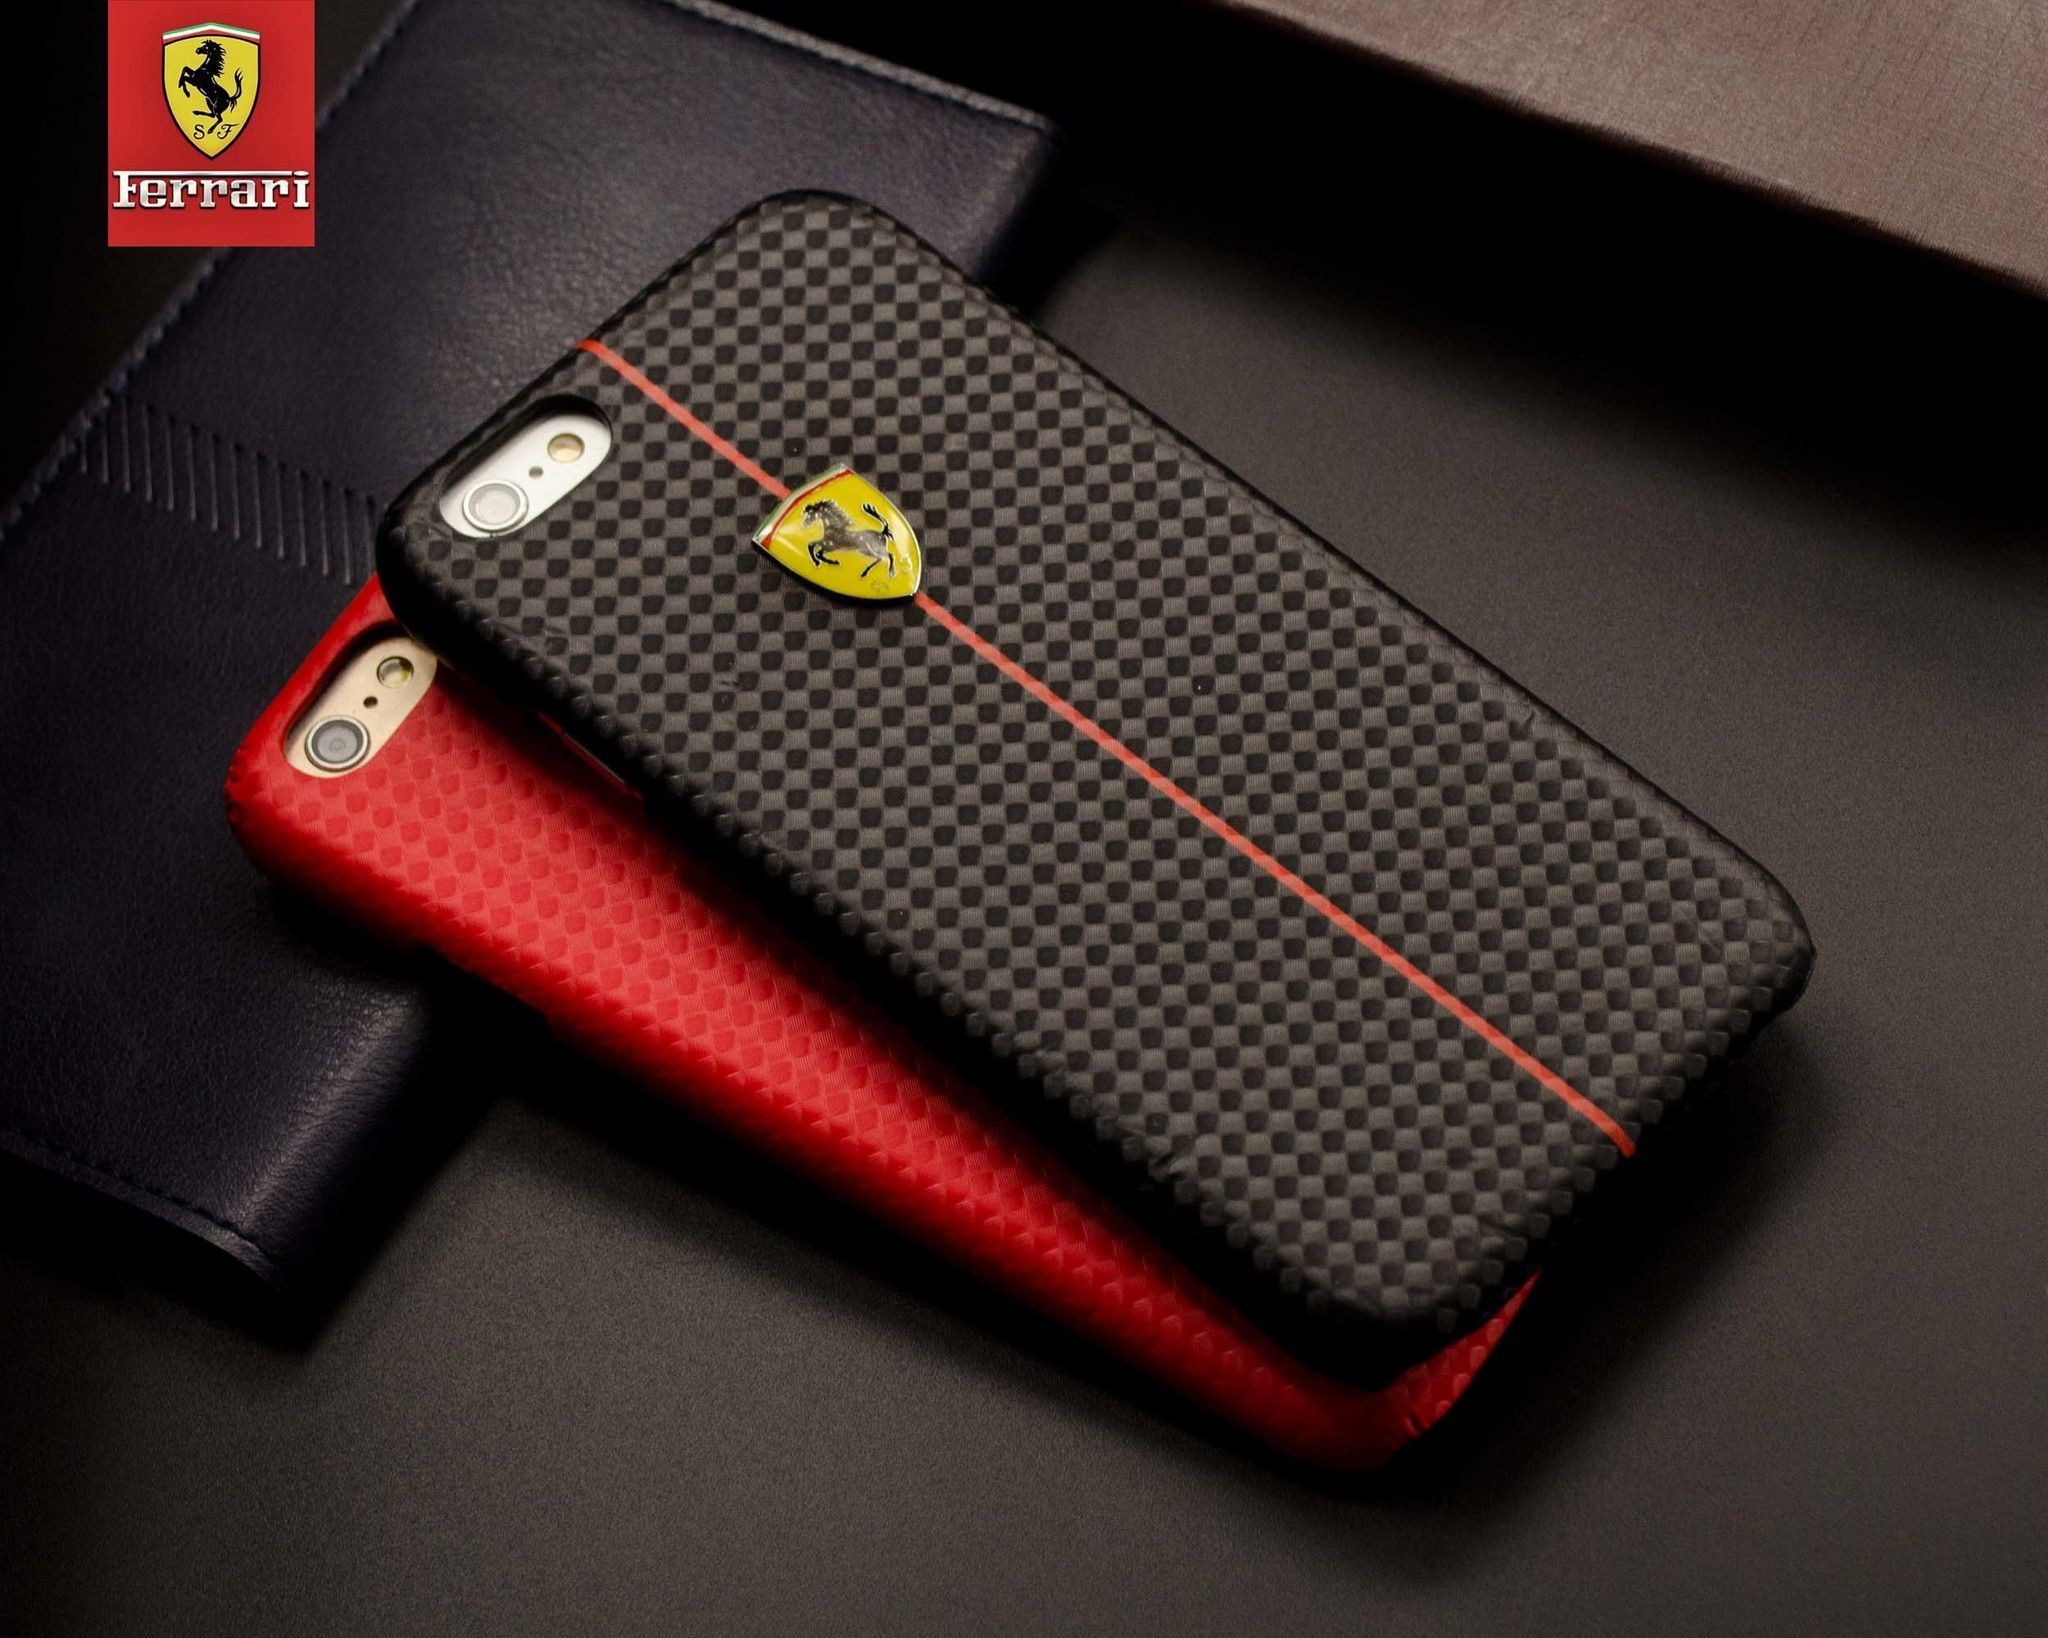 ferrari apple iphone 6 6s formula one carbon fiber 3d layer case back cover screen guards. Black Bedroom Furniture Sets. Home Design Ideas